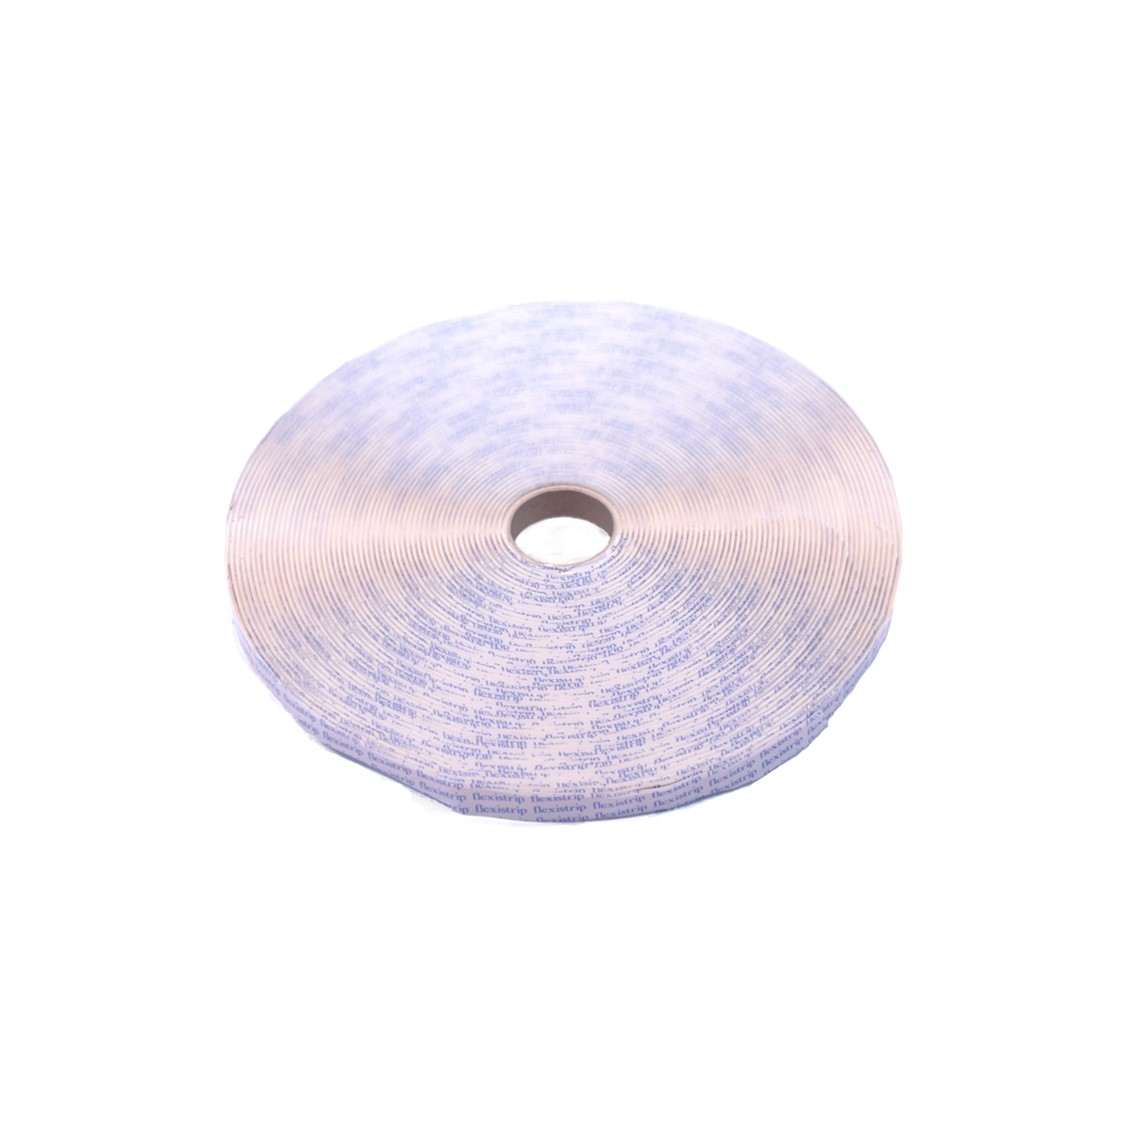 Flexistrip 15x2.5mm Off White Butyl Glazing Strip (30m Reel)